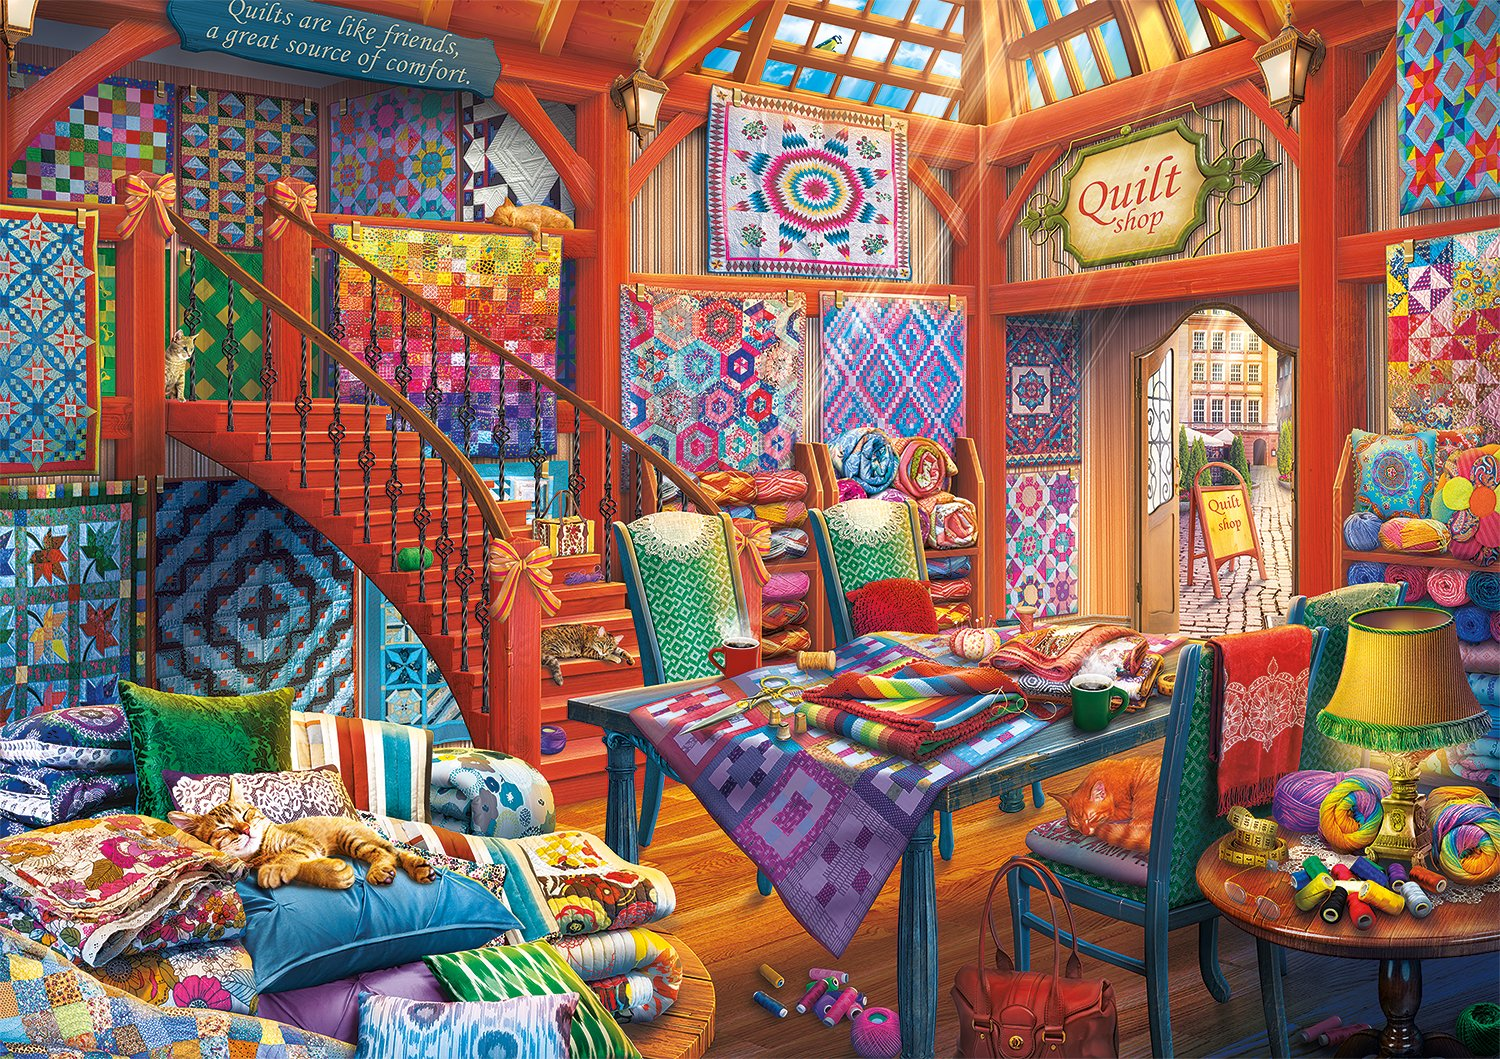 Buffalo Games Days to Remember - Quilt Shop - 500 Piece Jigsaw Puzzle